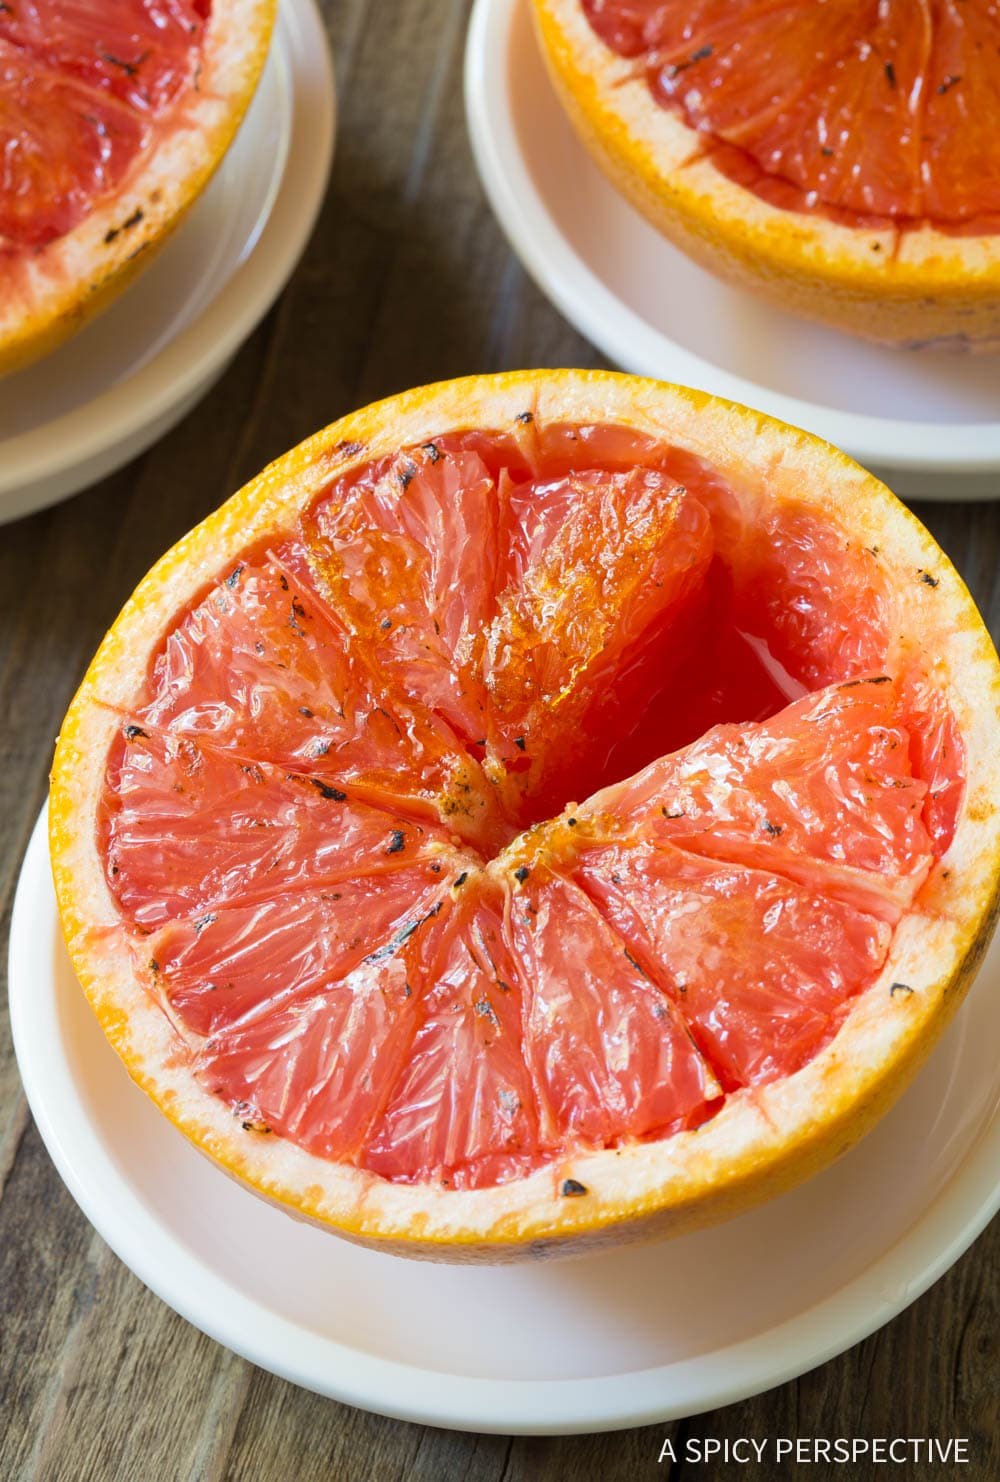 2-Ingredient Bruleed Grapefruit (Pamplemousse Brûlé) Recipe #ASpicyPerspective #vegan #vegetarian #healthy